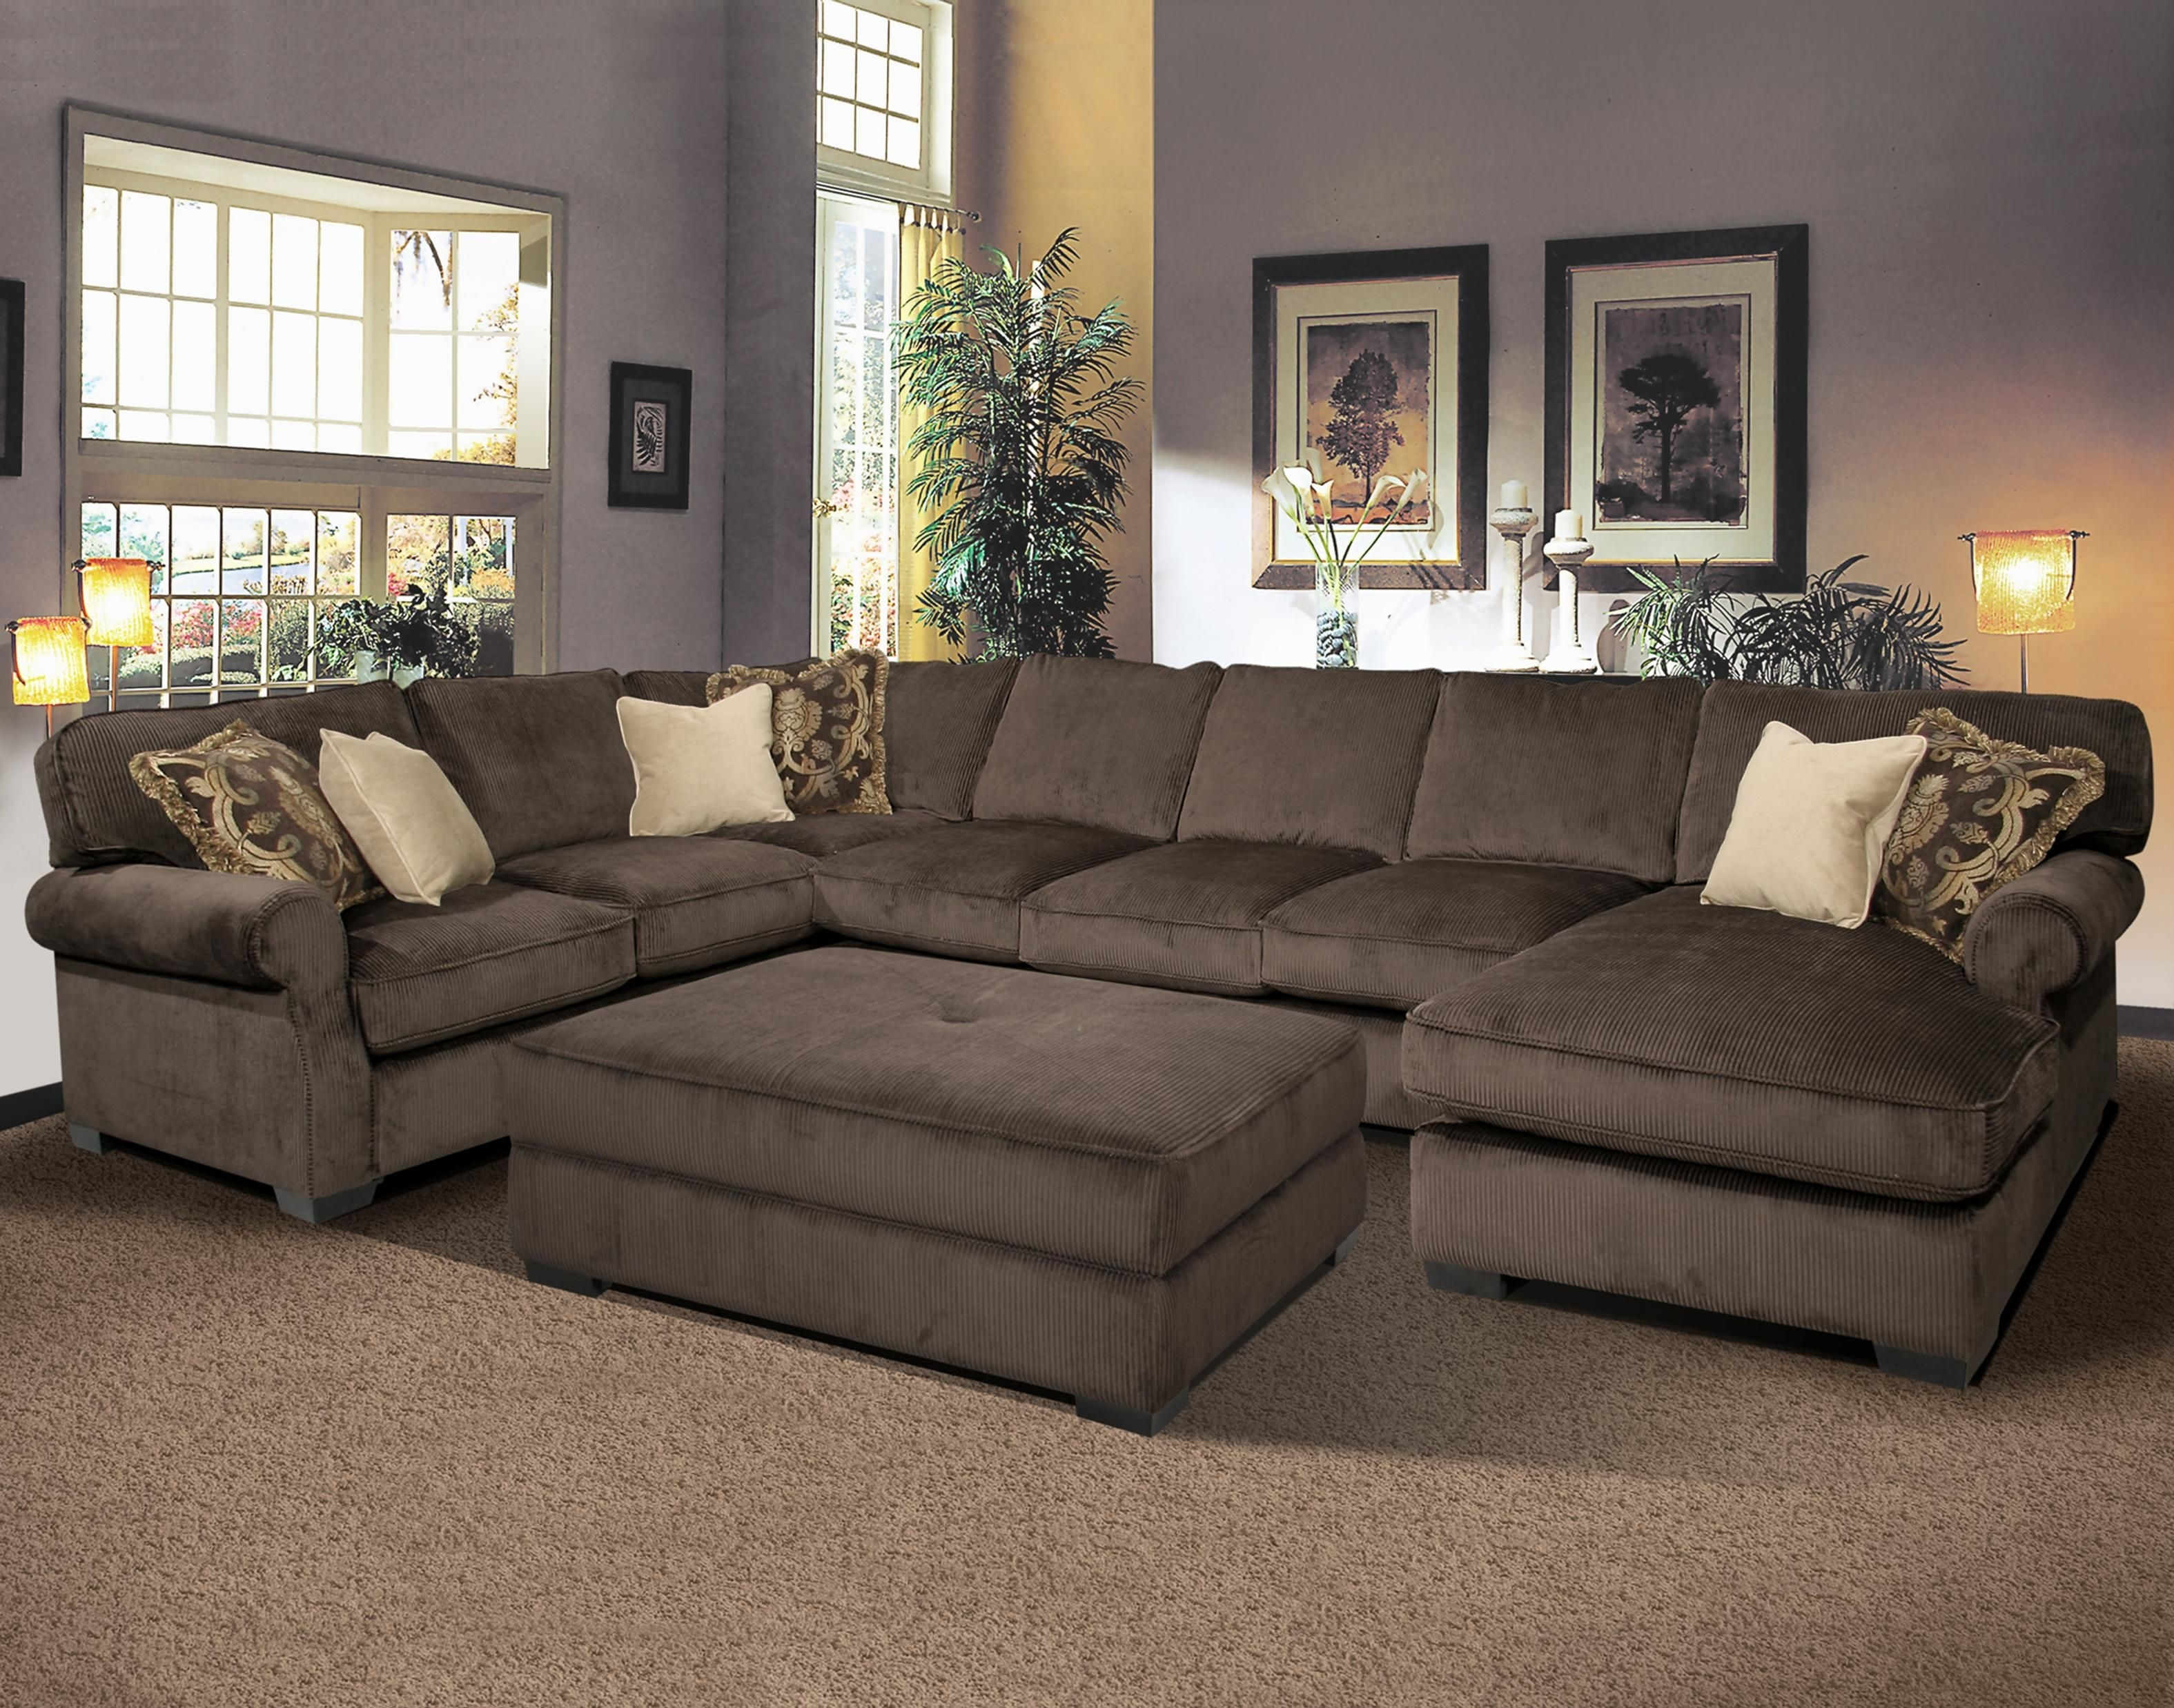 Big And Comfy Grand Island Large, 7 Seat Sectional Sofa With Right within Large Sectional Sofas (Image 1 of 10)